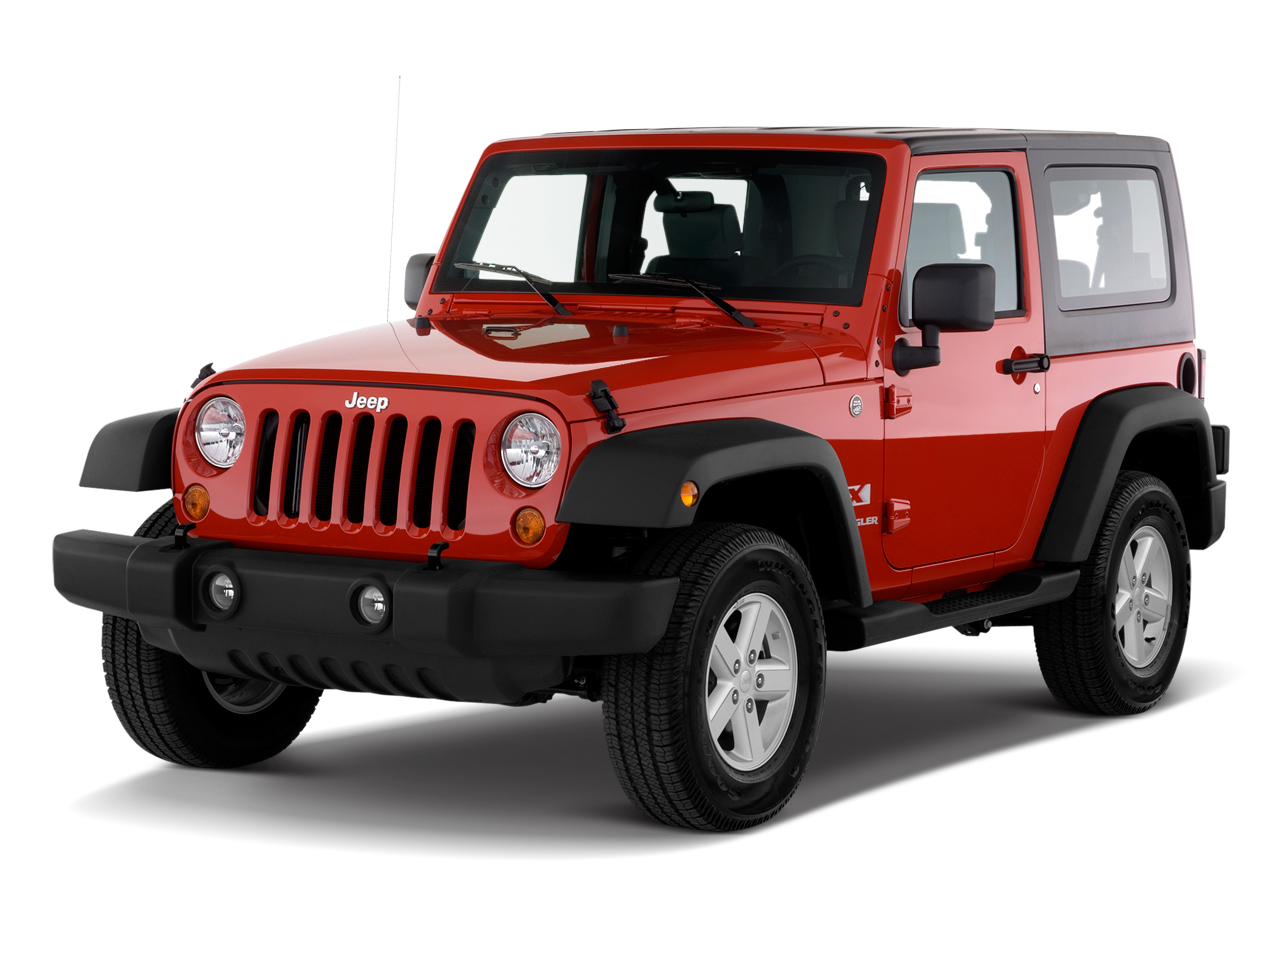 sport used rubicon unlimited carsguide car reviews jeep wrangler review